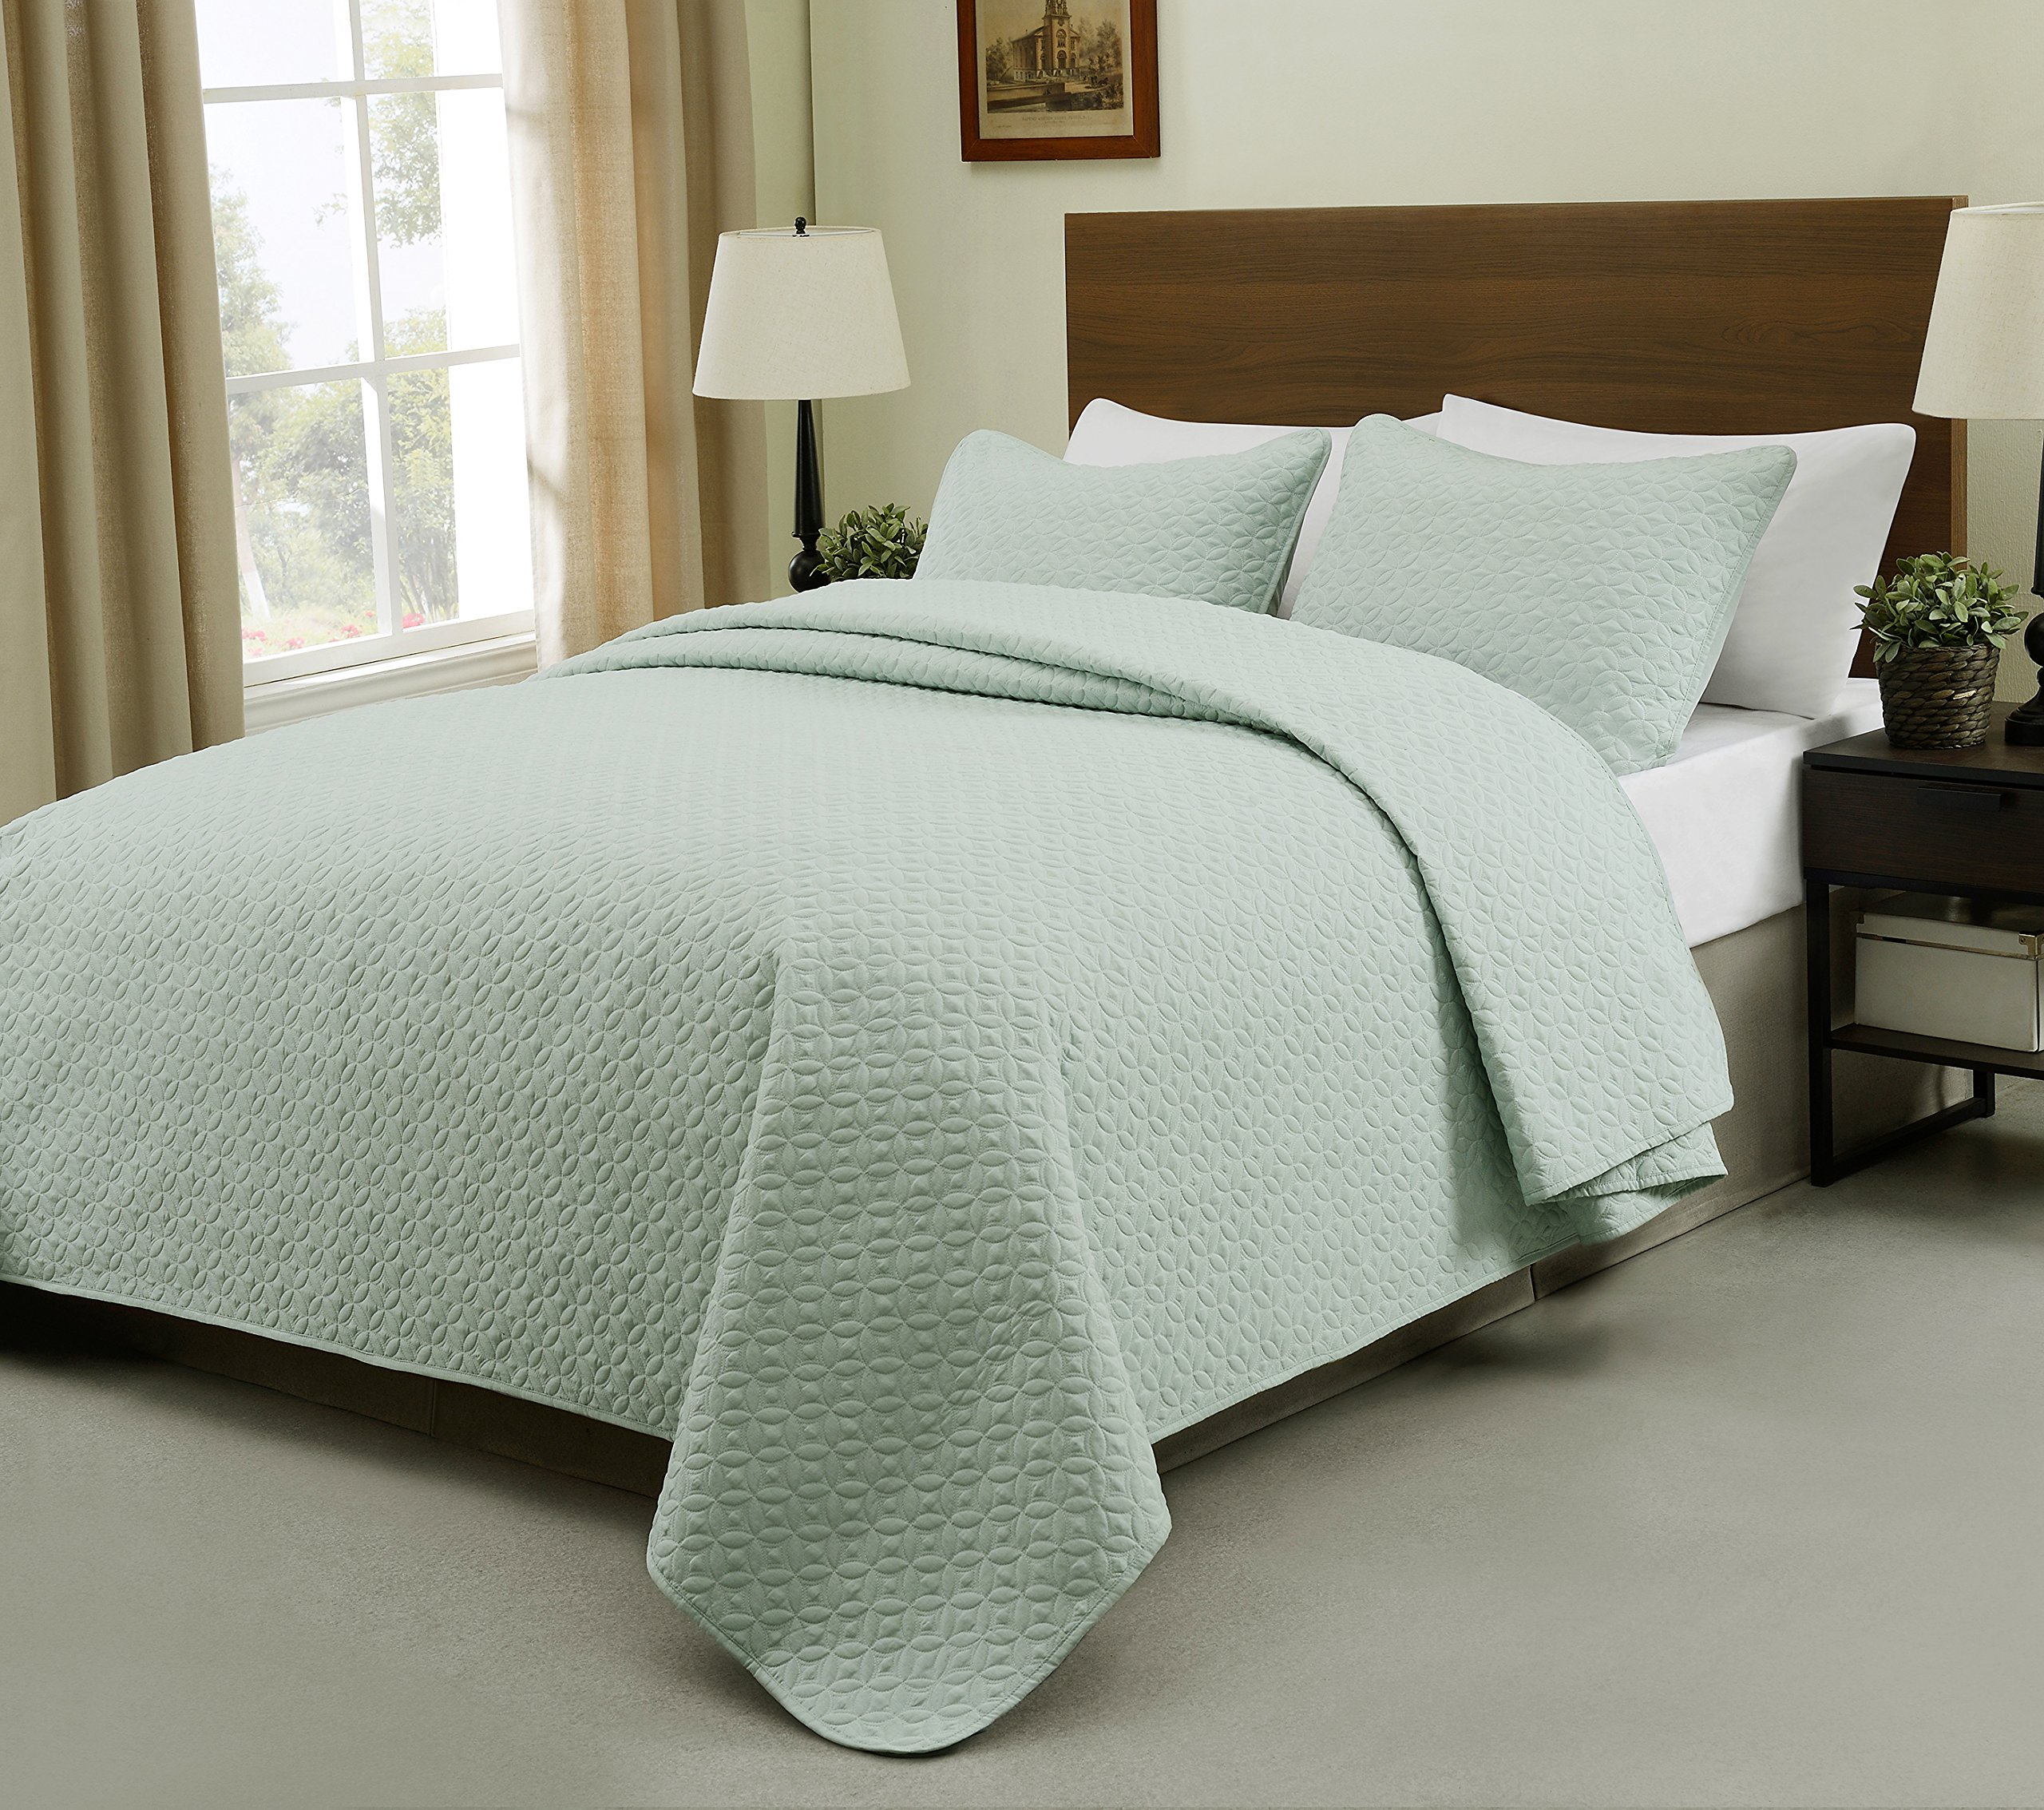 Allyson Full/Queen Size Bed 3pc Quilted Bedspread Aqua Green Color Bed Cover Set, Thin Extra Light weight and Oversized coverlet by Cozy Beddings